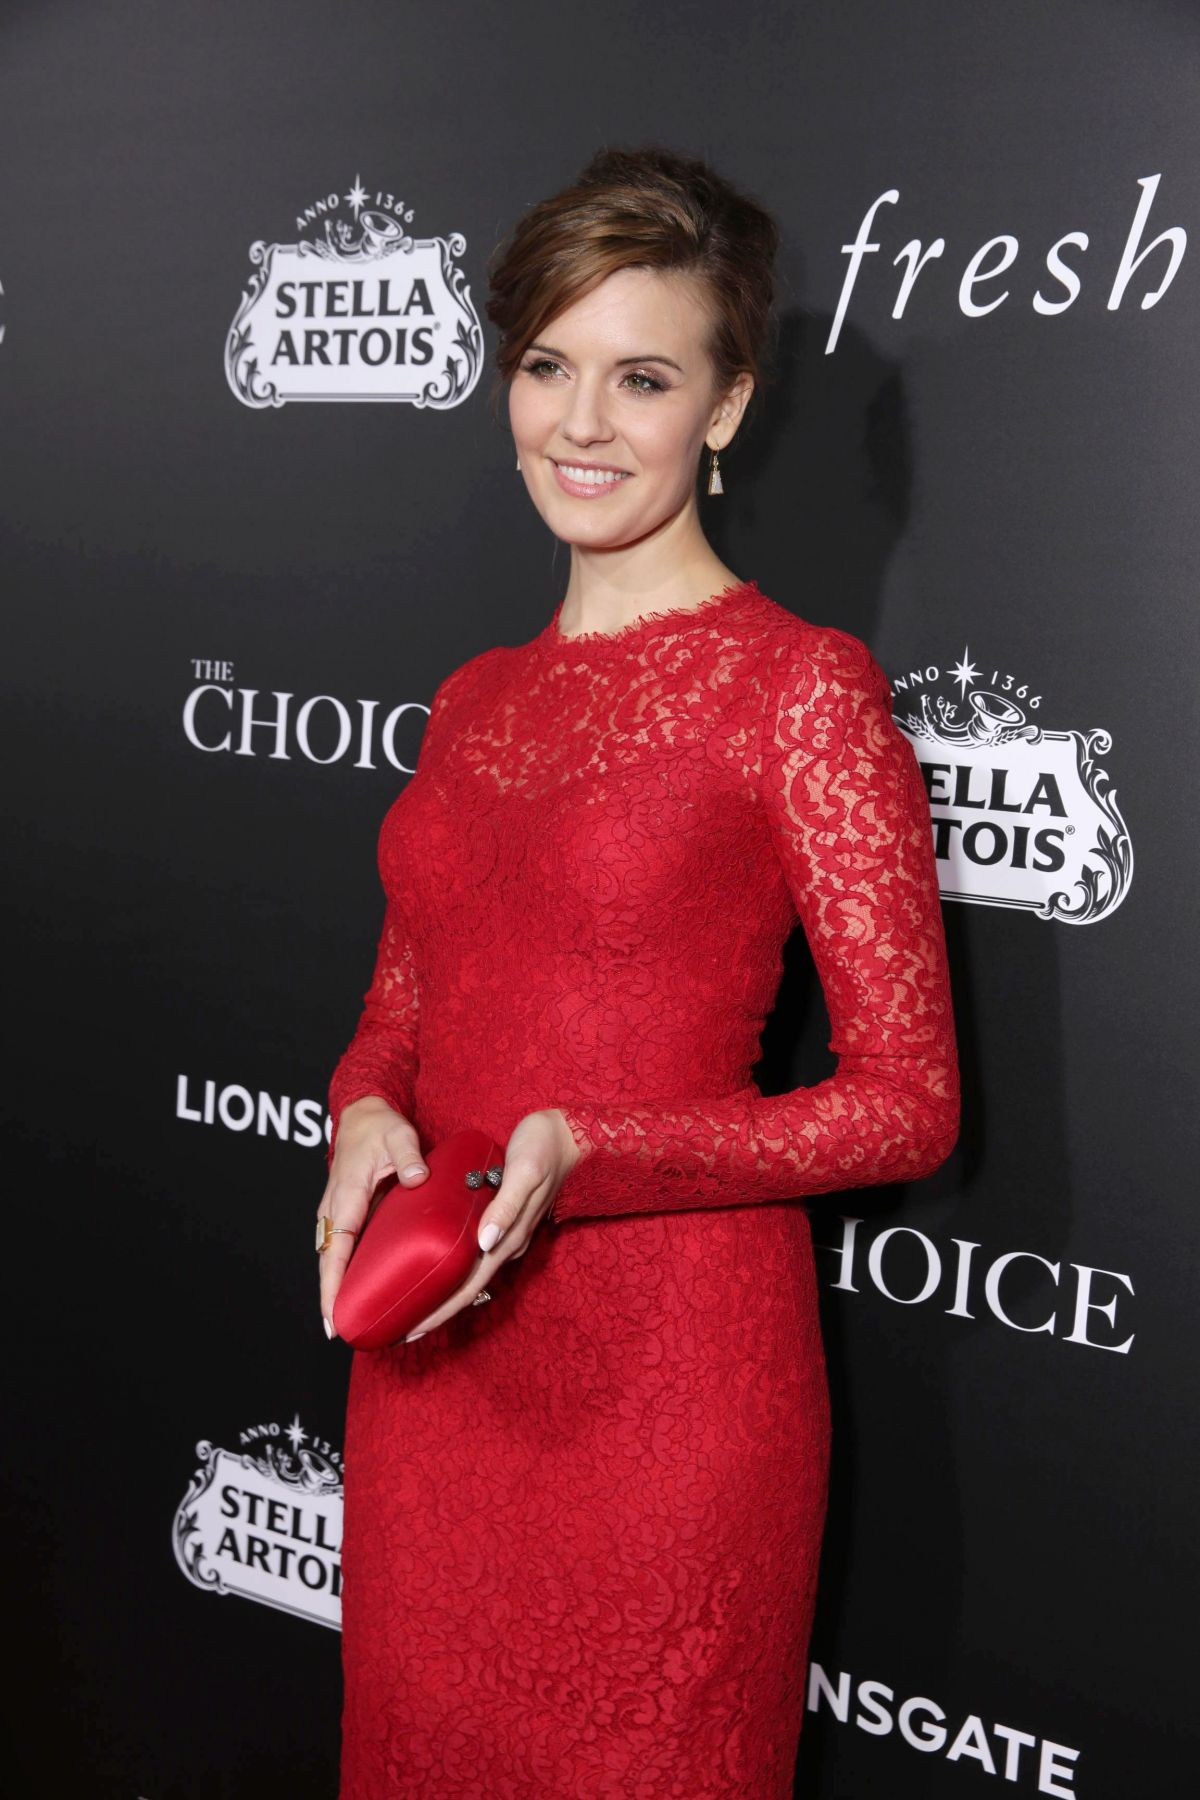 MAGGIE GRACE at The Choice Premiere in Hollywood 02/01/2016